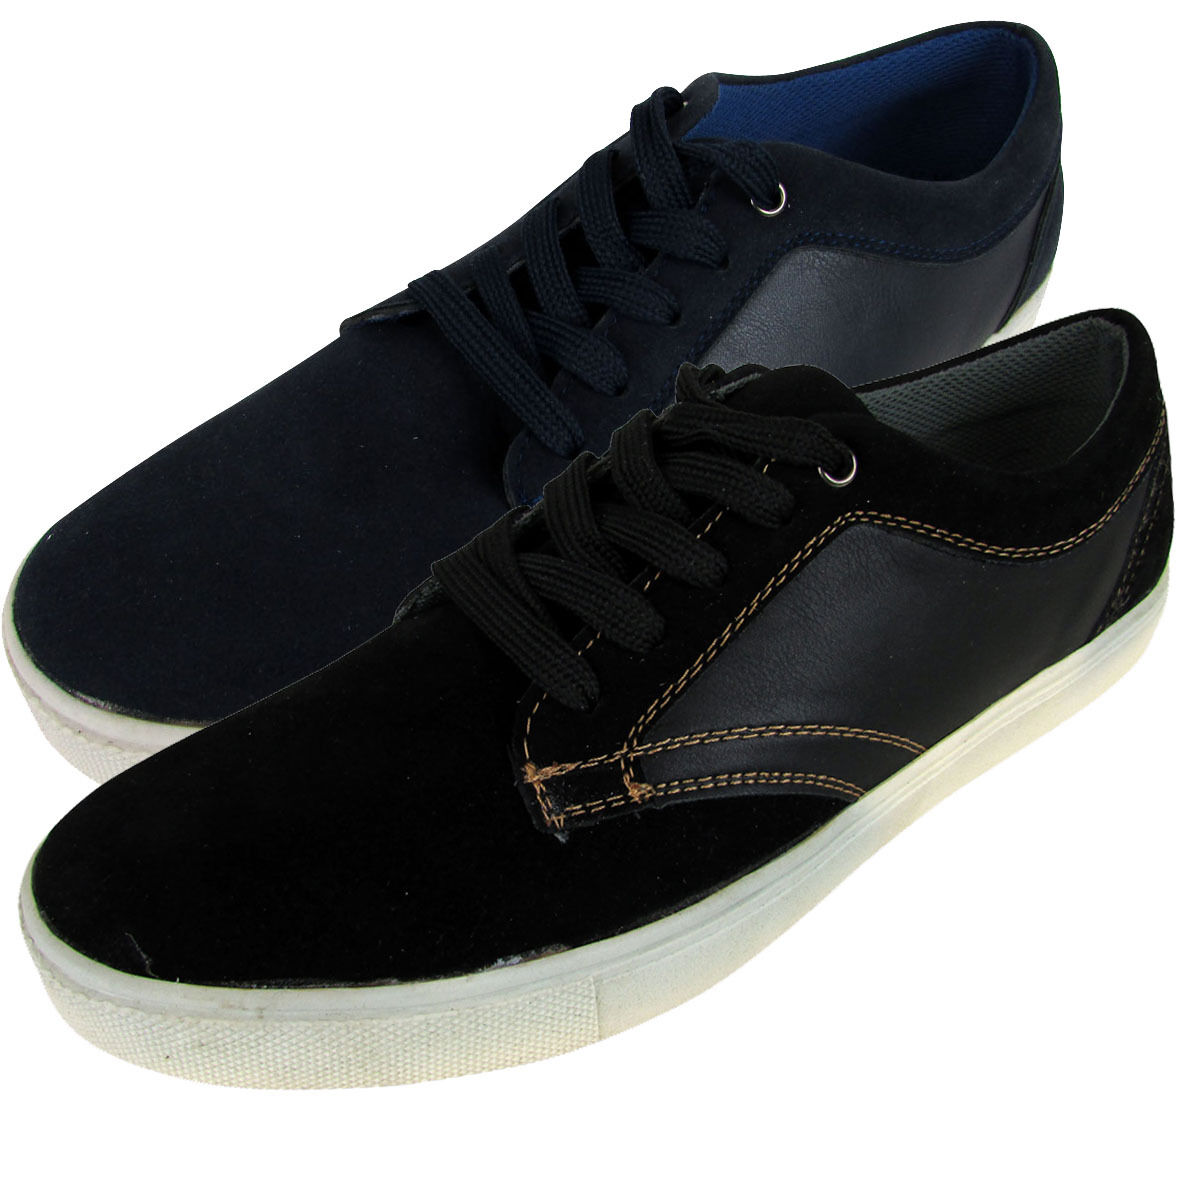 Mens Casual Flat Lace Up Faux Leather Skate Pumps Plimsolls Trainers Shoes 7-12 Comfortable and good-looking